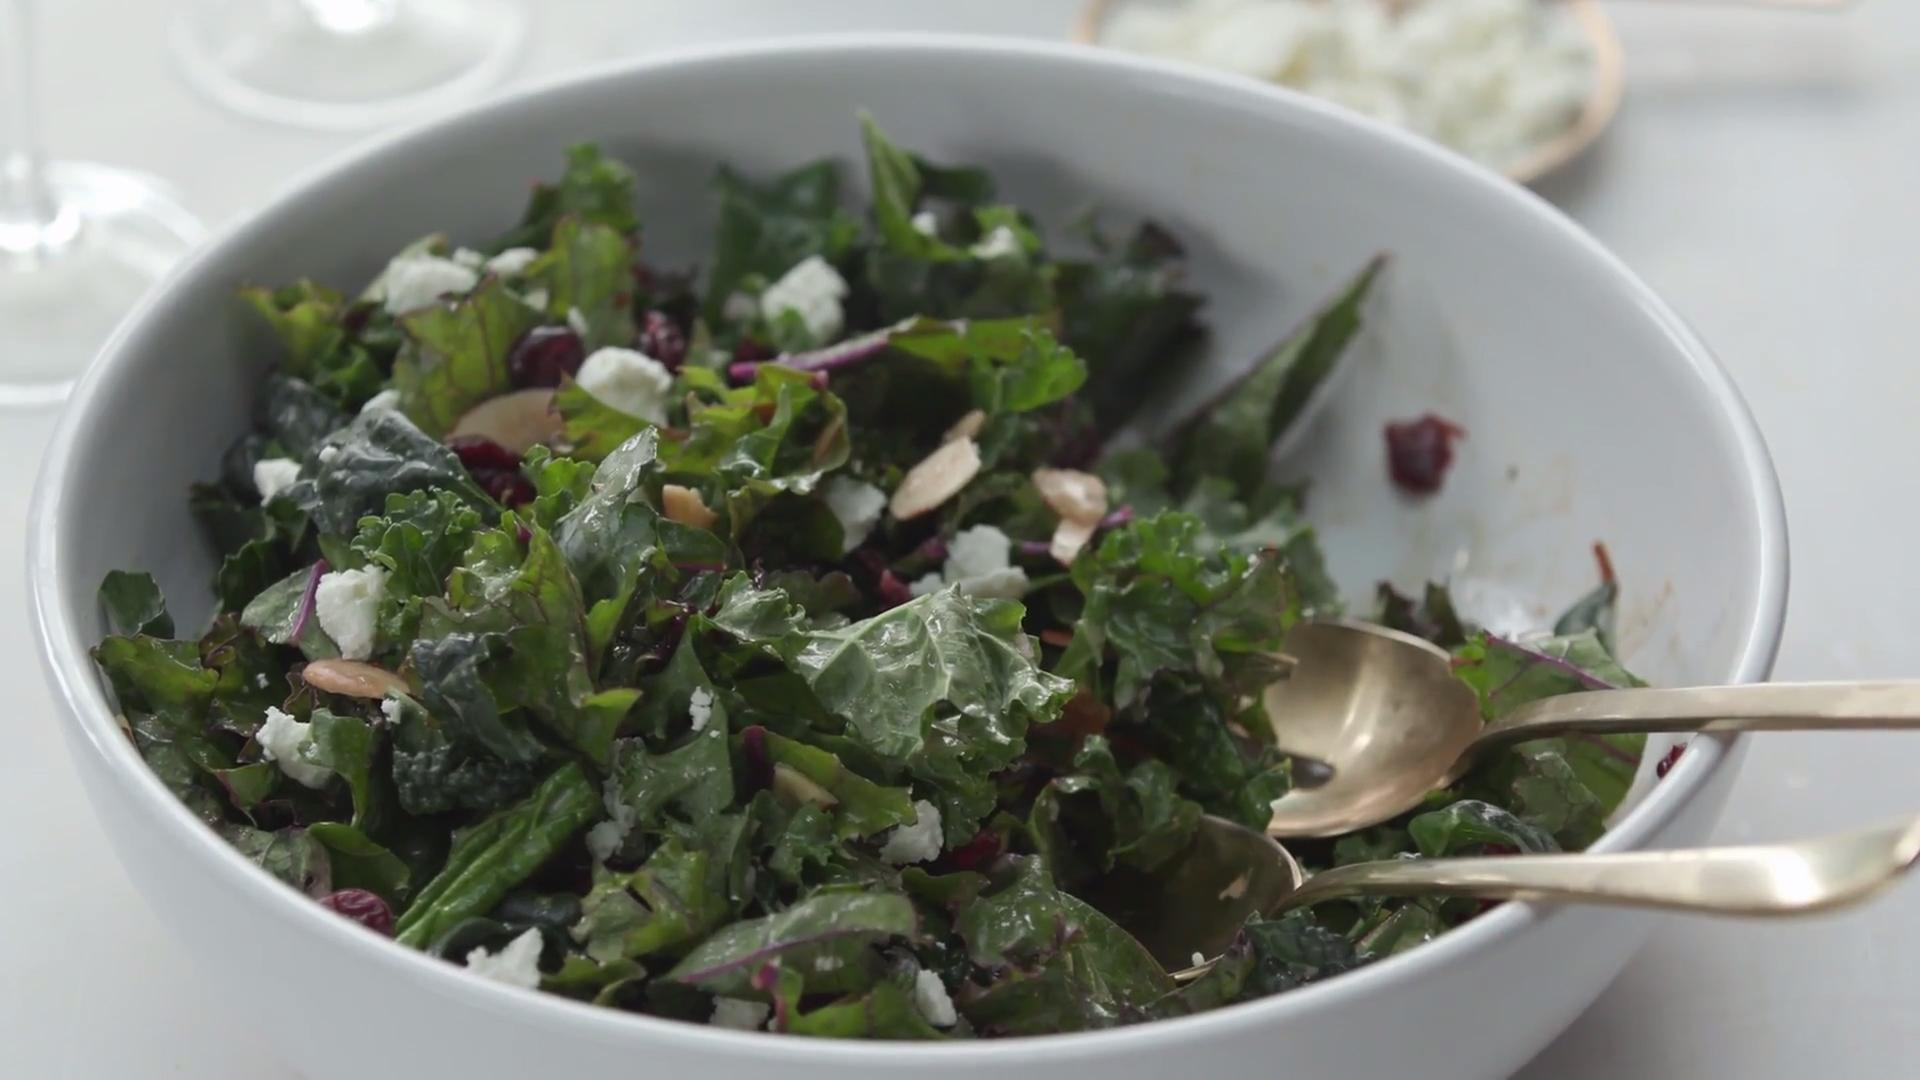 Kale Salad with Cranberries, Almonds and Goat Cheese